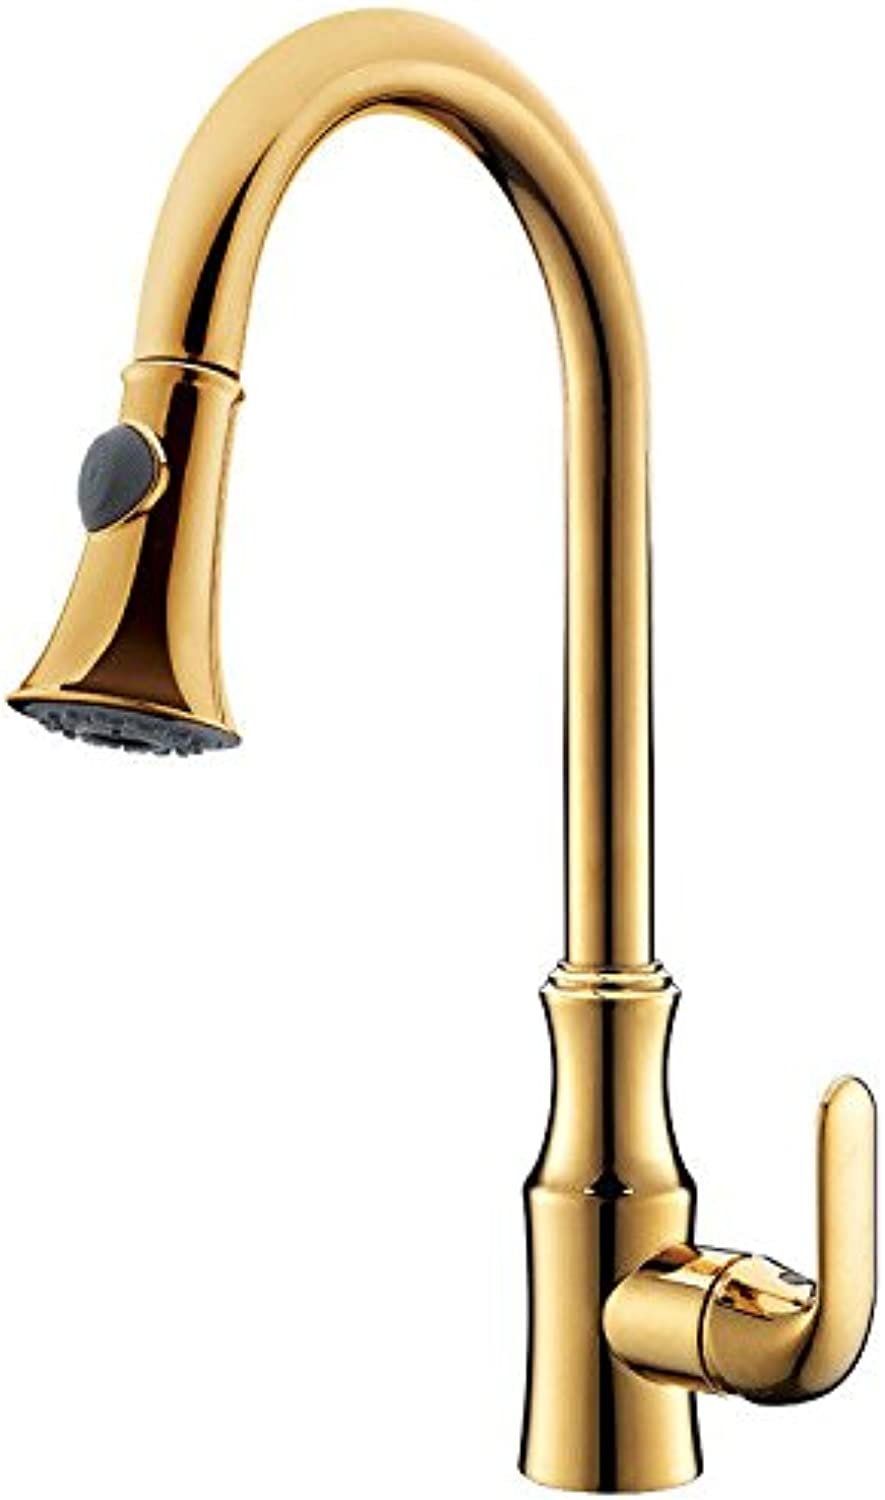 AQMMi Bathroom Sink Faucet Basin Mixer Tap golden Brass Cold and Hot Water Basin Sink Tap Bathroom Bar Faucet